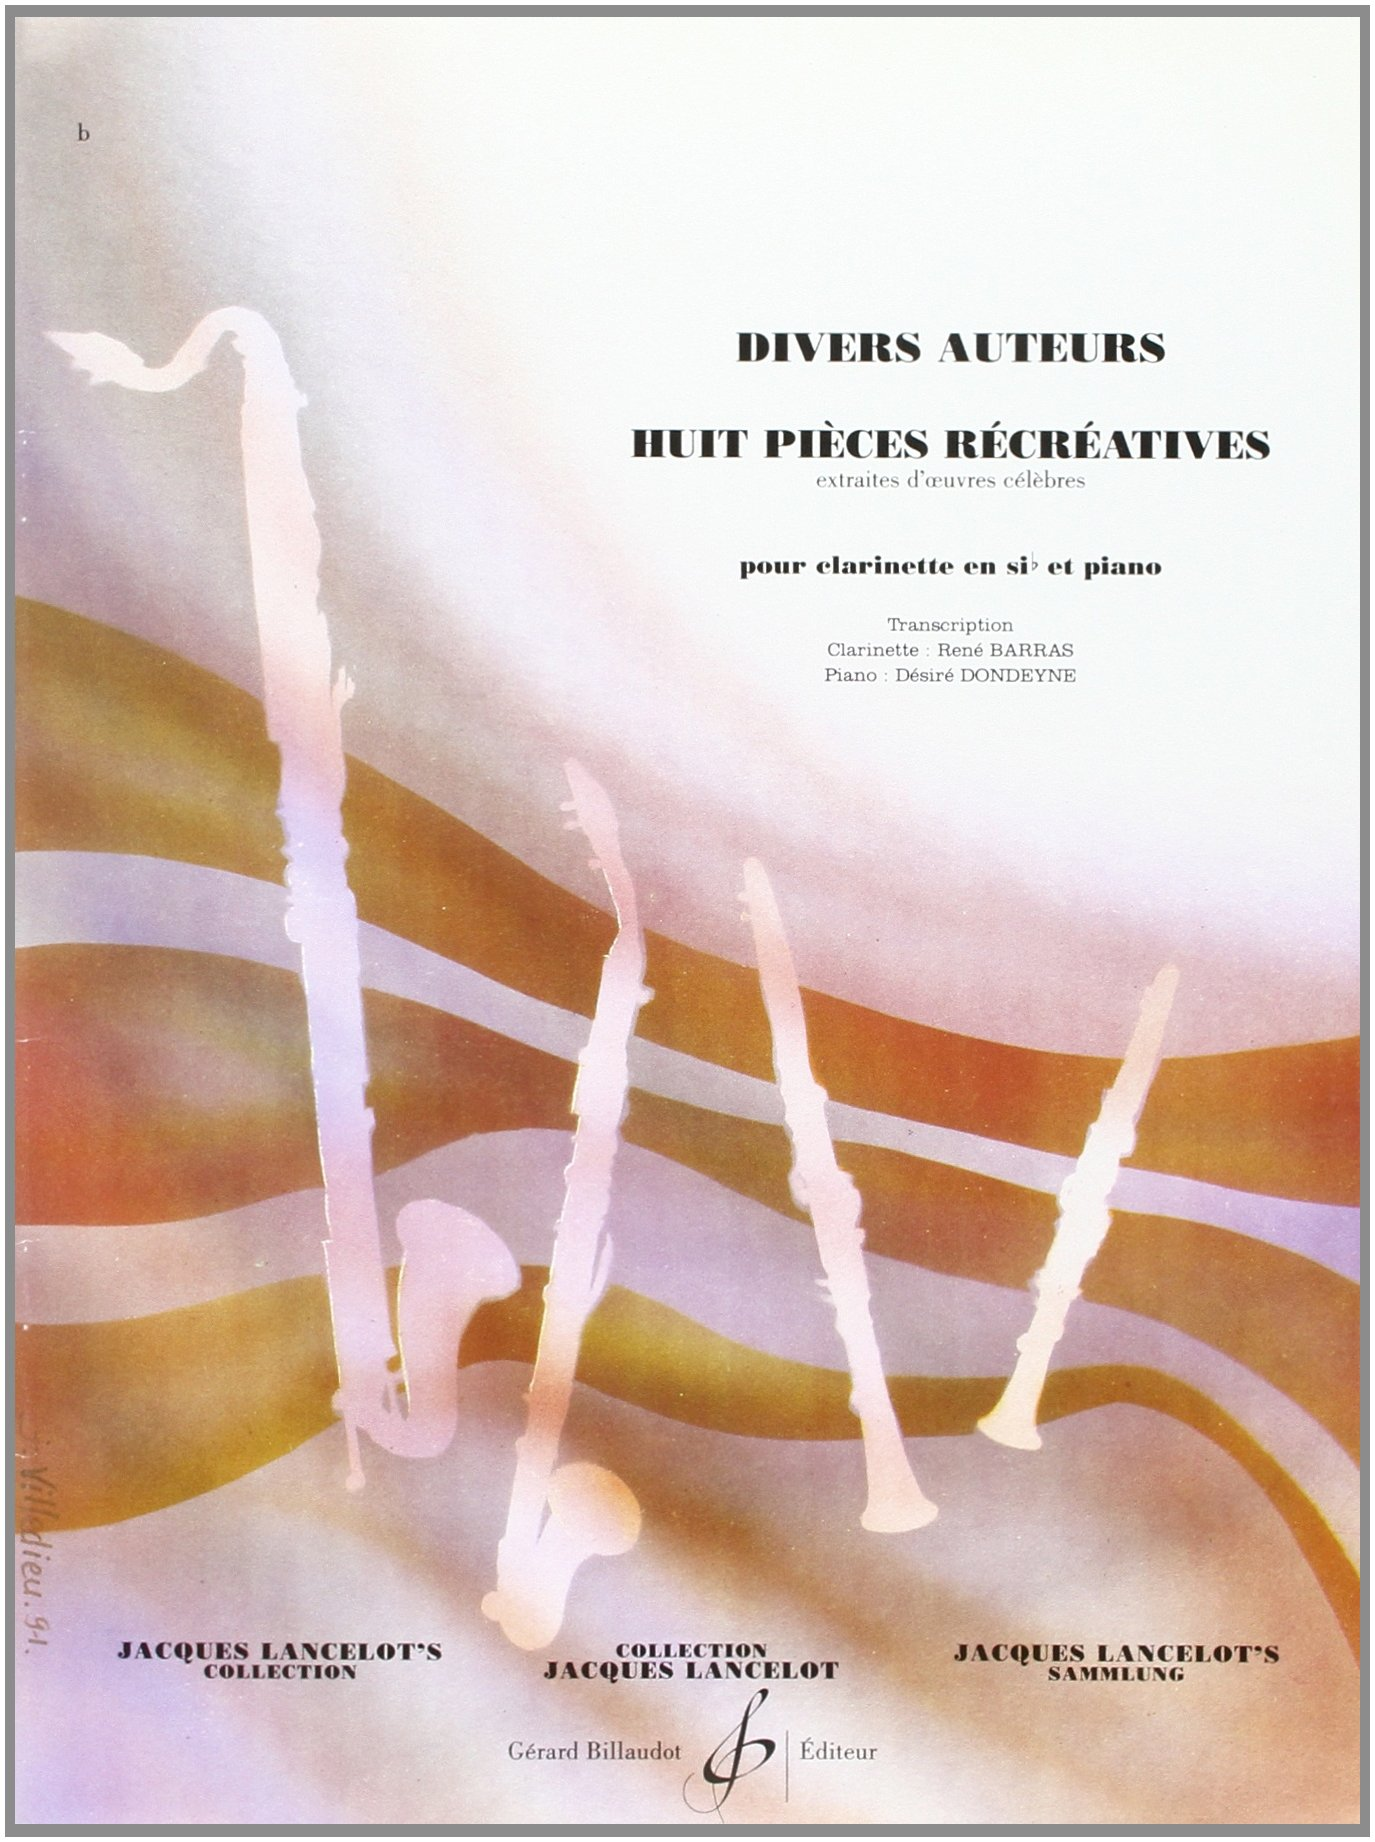 Huit Pieces Recreatives Broché – 1 janvier 2000 Divers Auteurs Billaudot B003JYOVP4